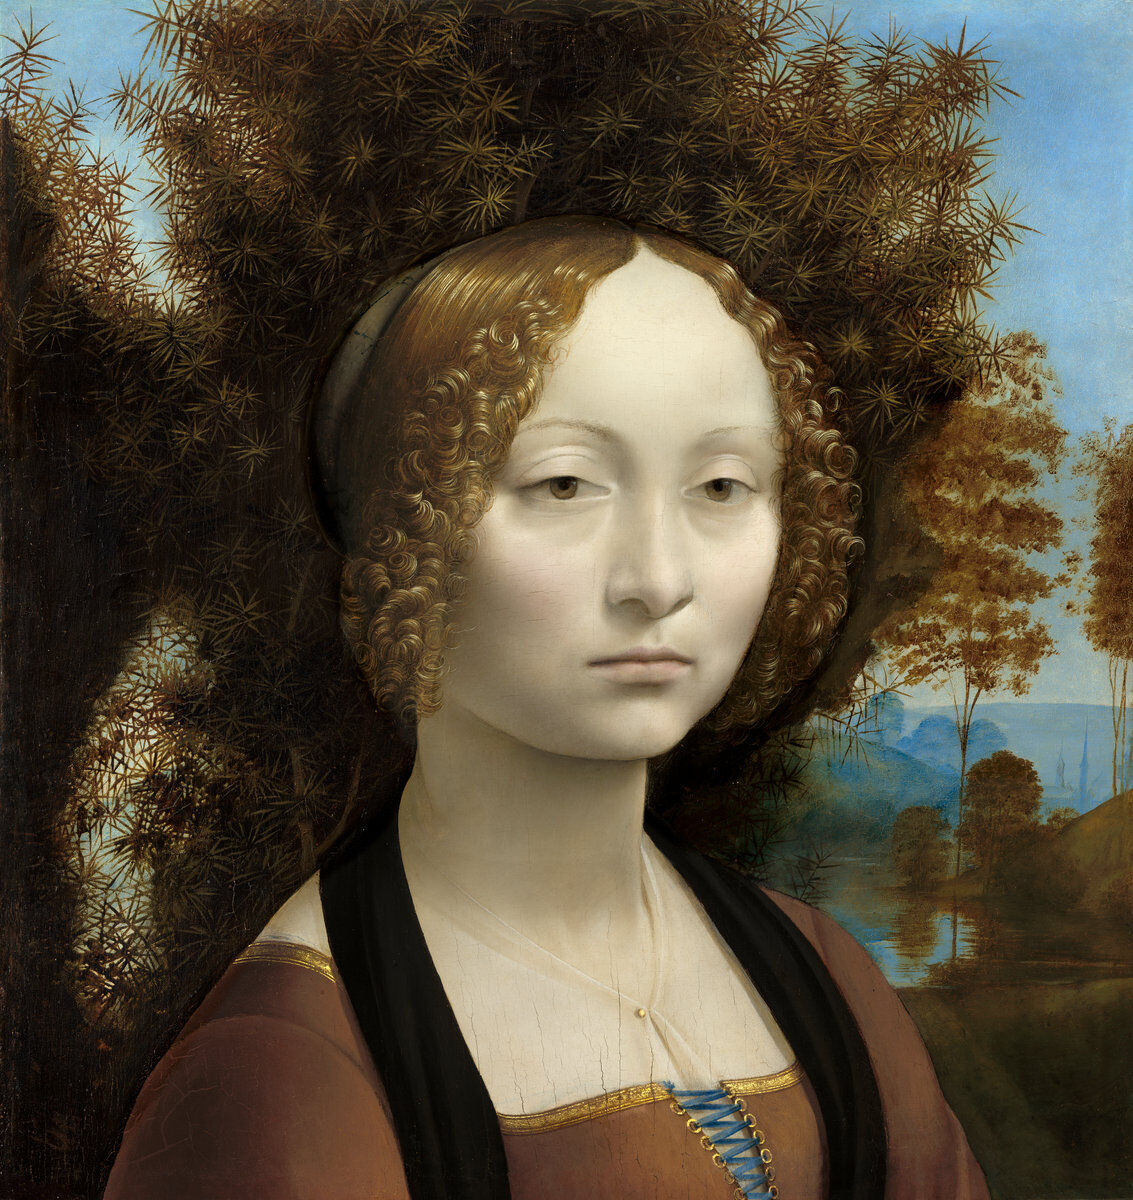 Leonardo da Vinci, Ginevra de' Benci [obverse], c. 1474/1478. Courtesy of the National Gallery of Art.